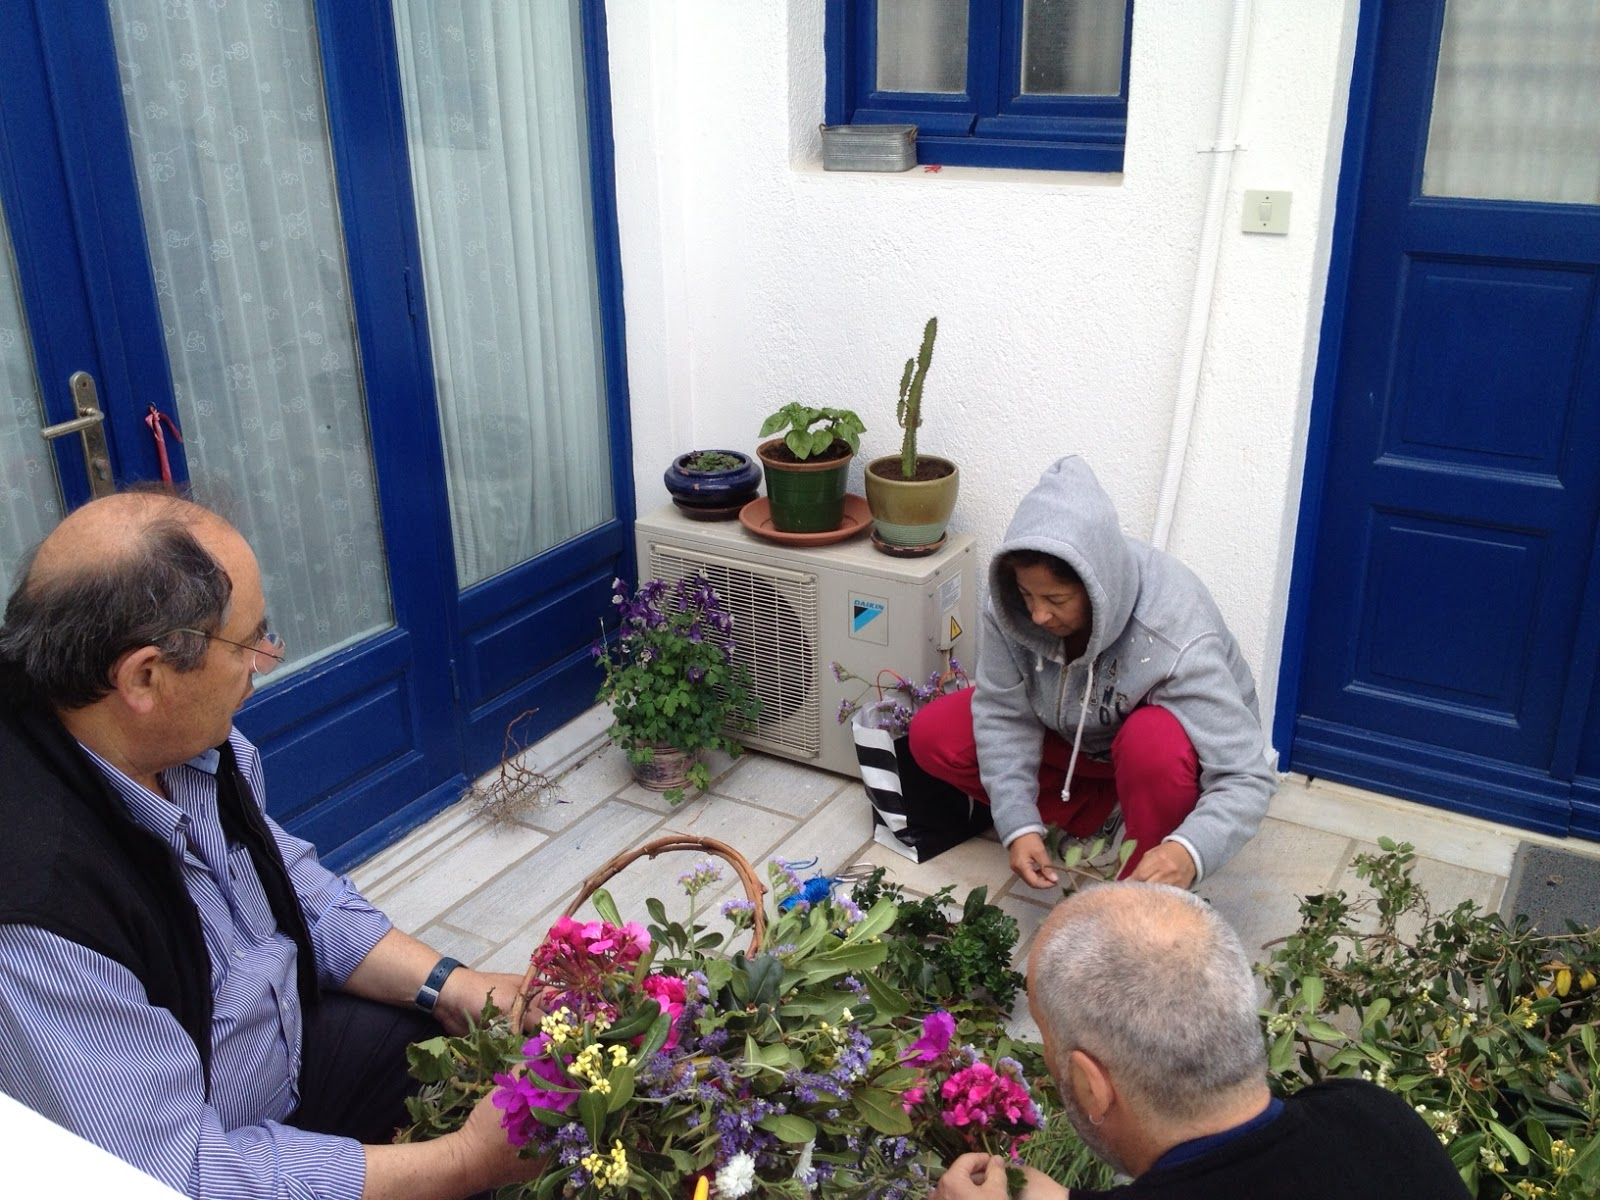 May Day wreath making in Mykonos